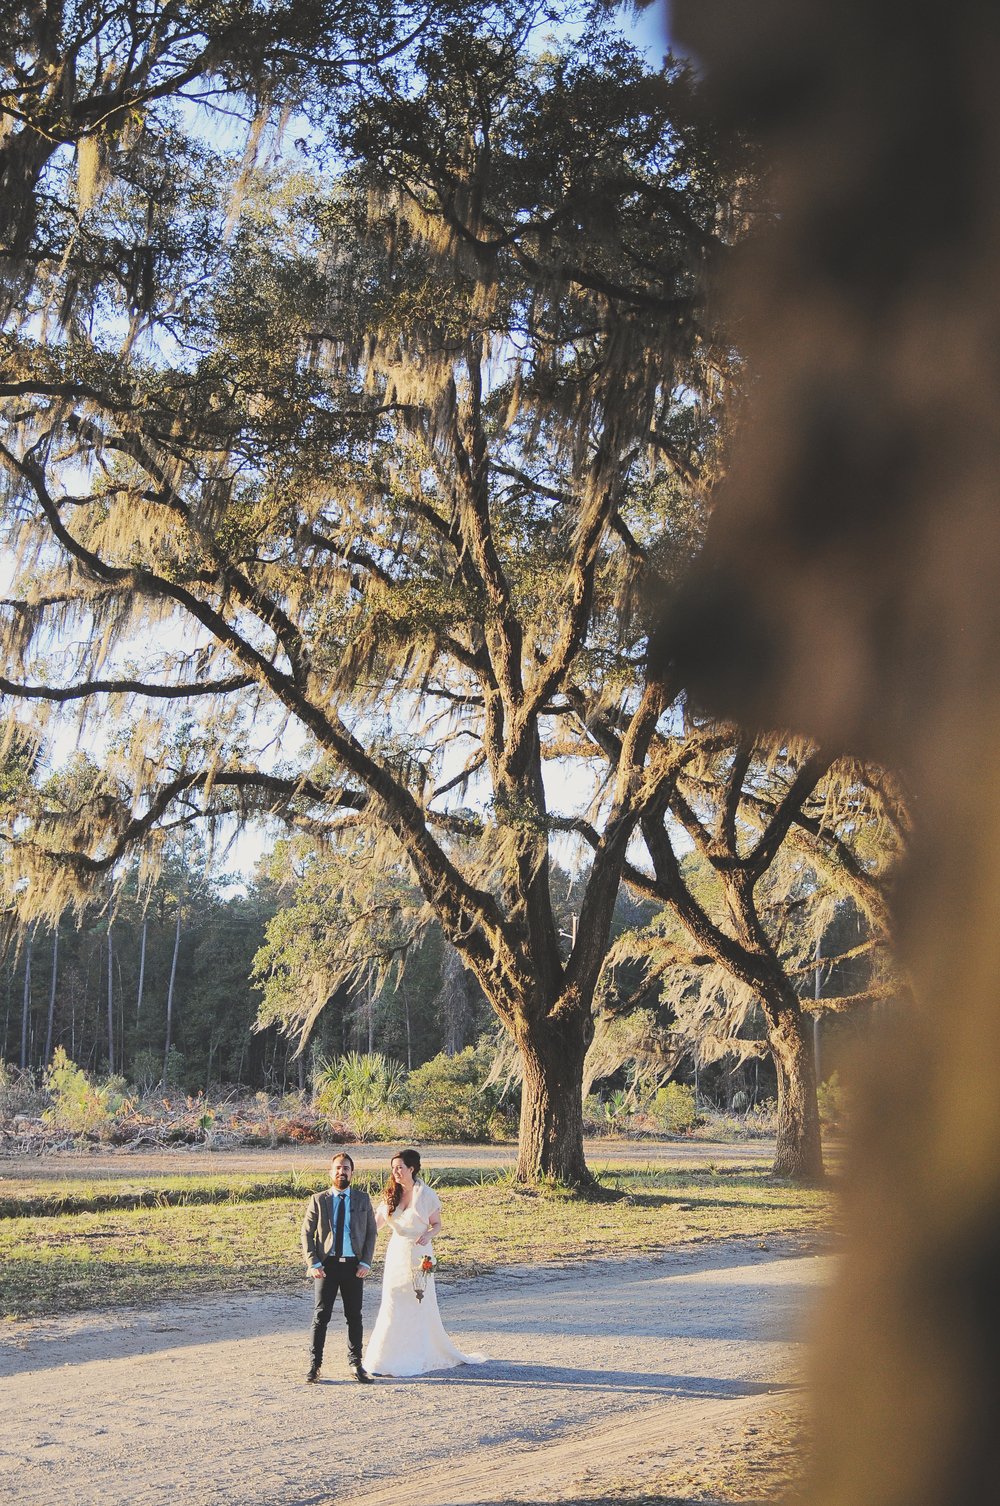 amber-and-david-ivory-and-beau-bridal-boutique-lytle-foto-savannah-wedding-dresses-savannah-wedding-planner-savannah-event-designer-savannah-weddings-wormsloe-wedding-cohens-retreat-wedding-indie-wedding-handmade-wedding-historic-18.JPG